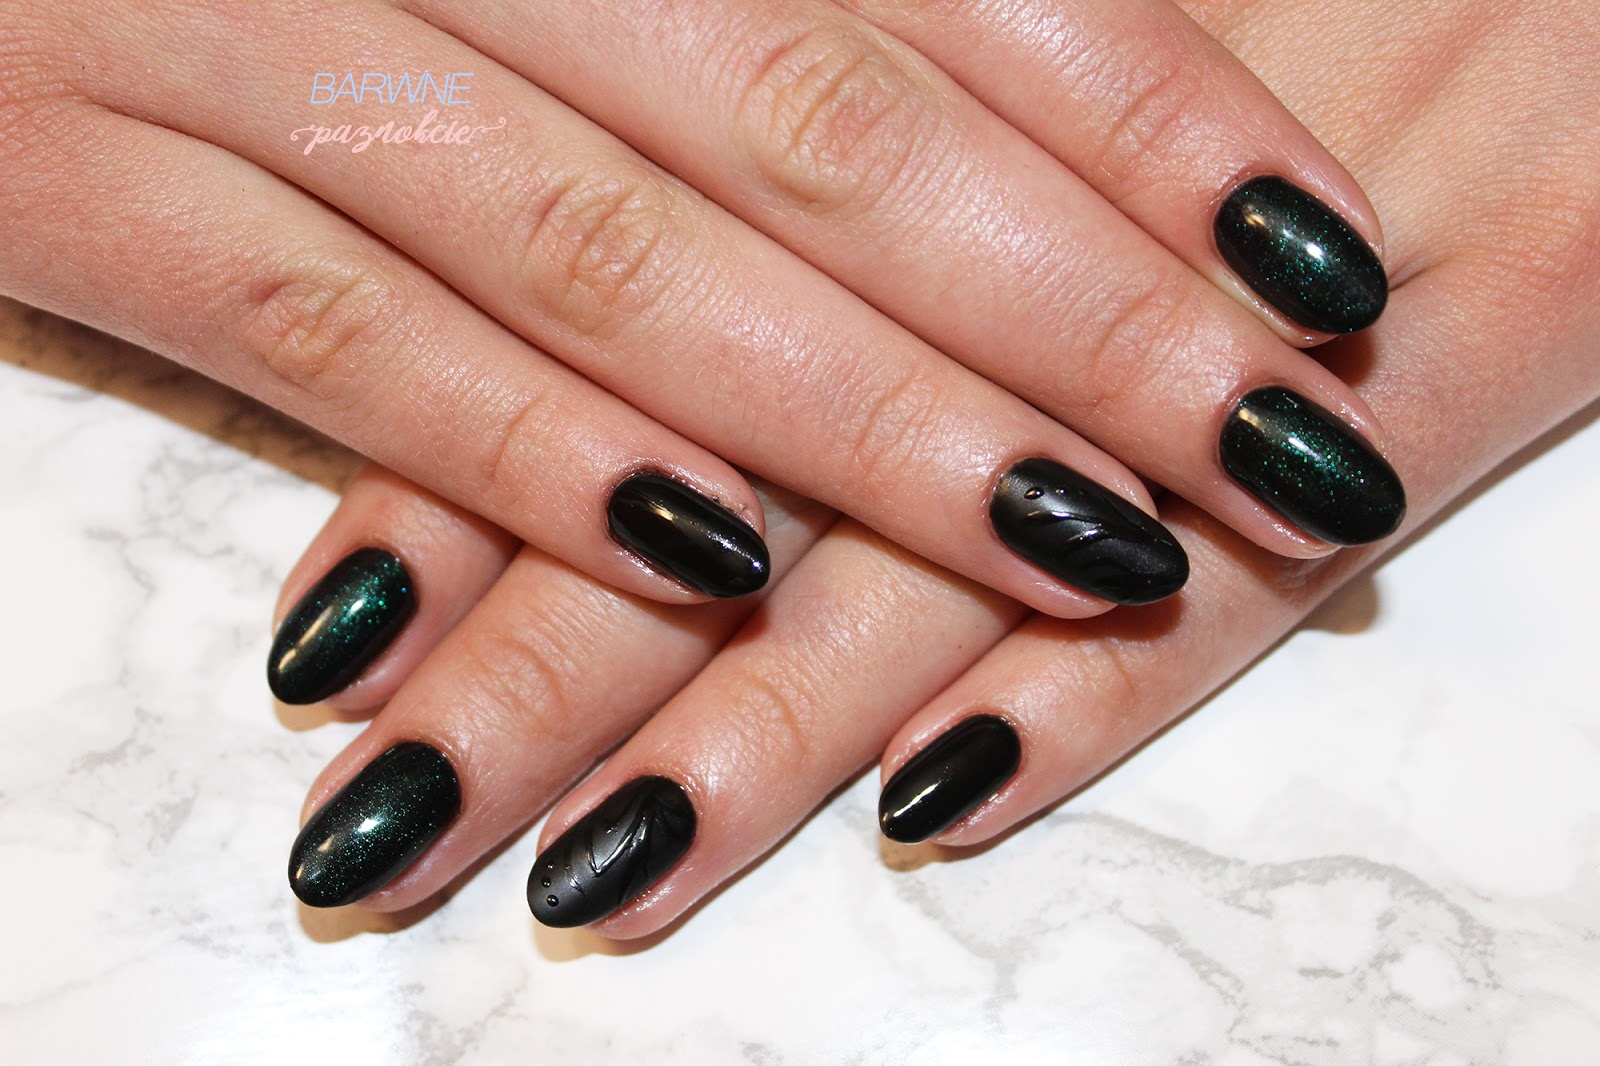 Semilac 031 Black Diamond, Top No Wipe Chameleon 604, Semi Art Black, black nails, semilac, barwne paznokcie, manicure hybrydowy, jesień 2017